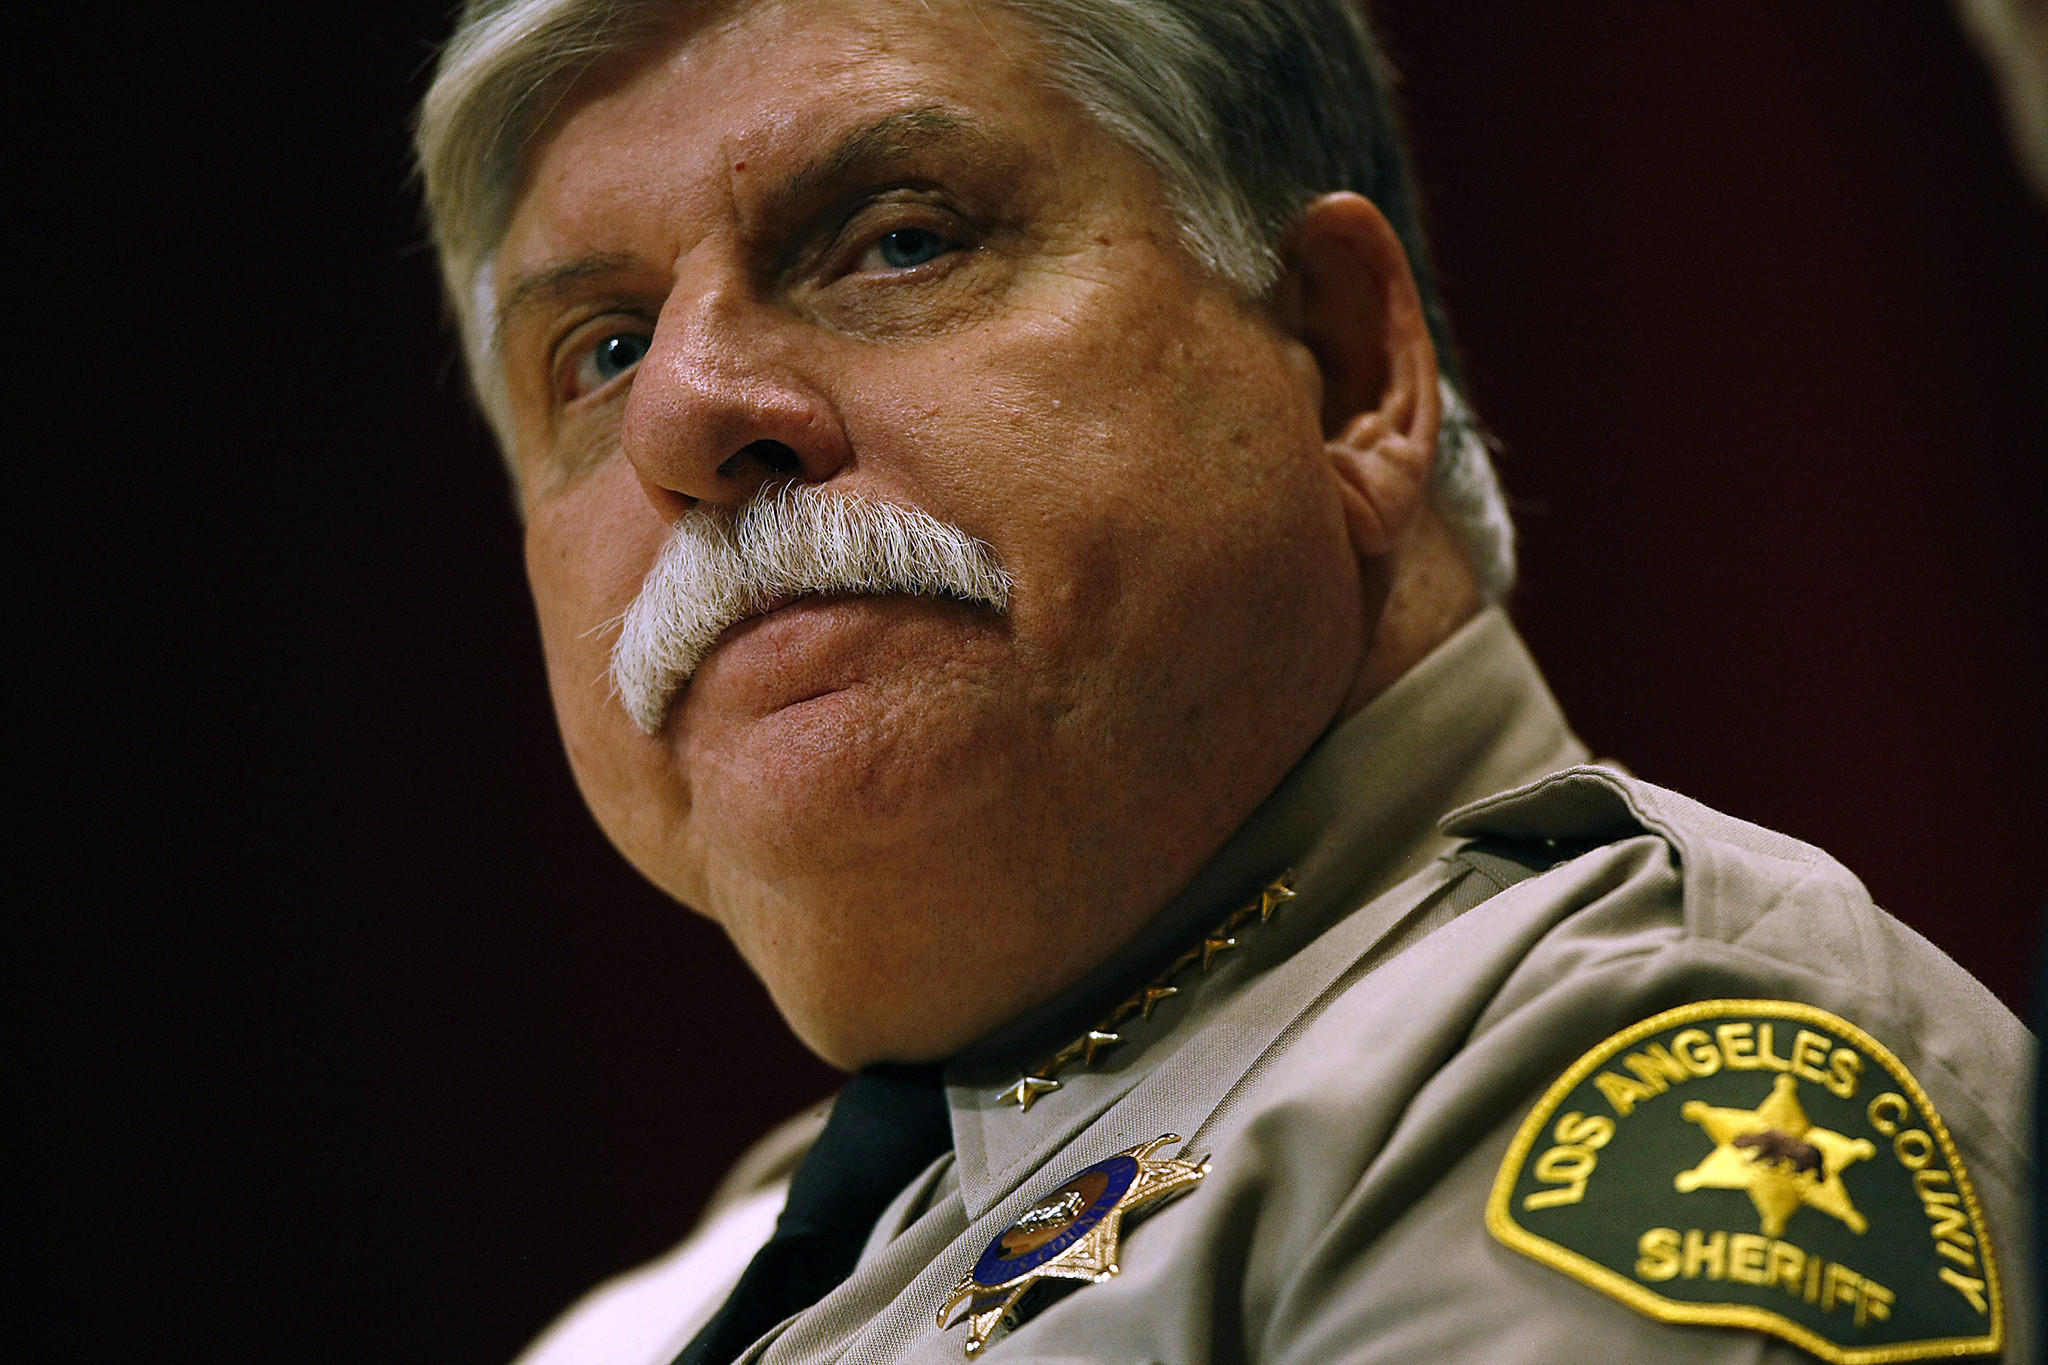 Interim L.A. County Sheriff John Scott presides over the ceremony for 48 academy graduates at East L.A. College.